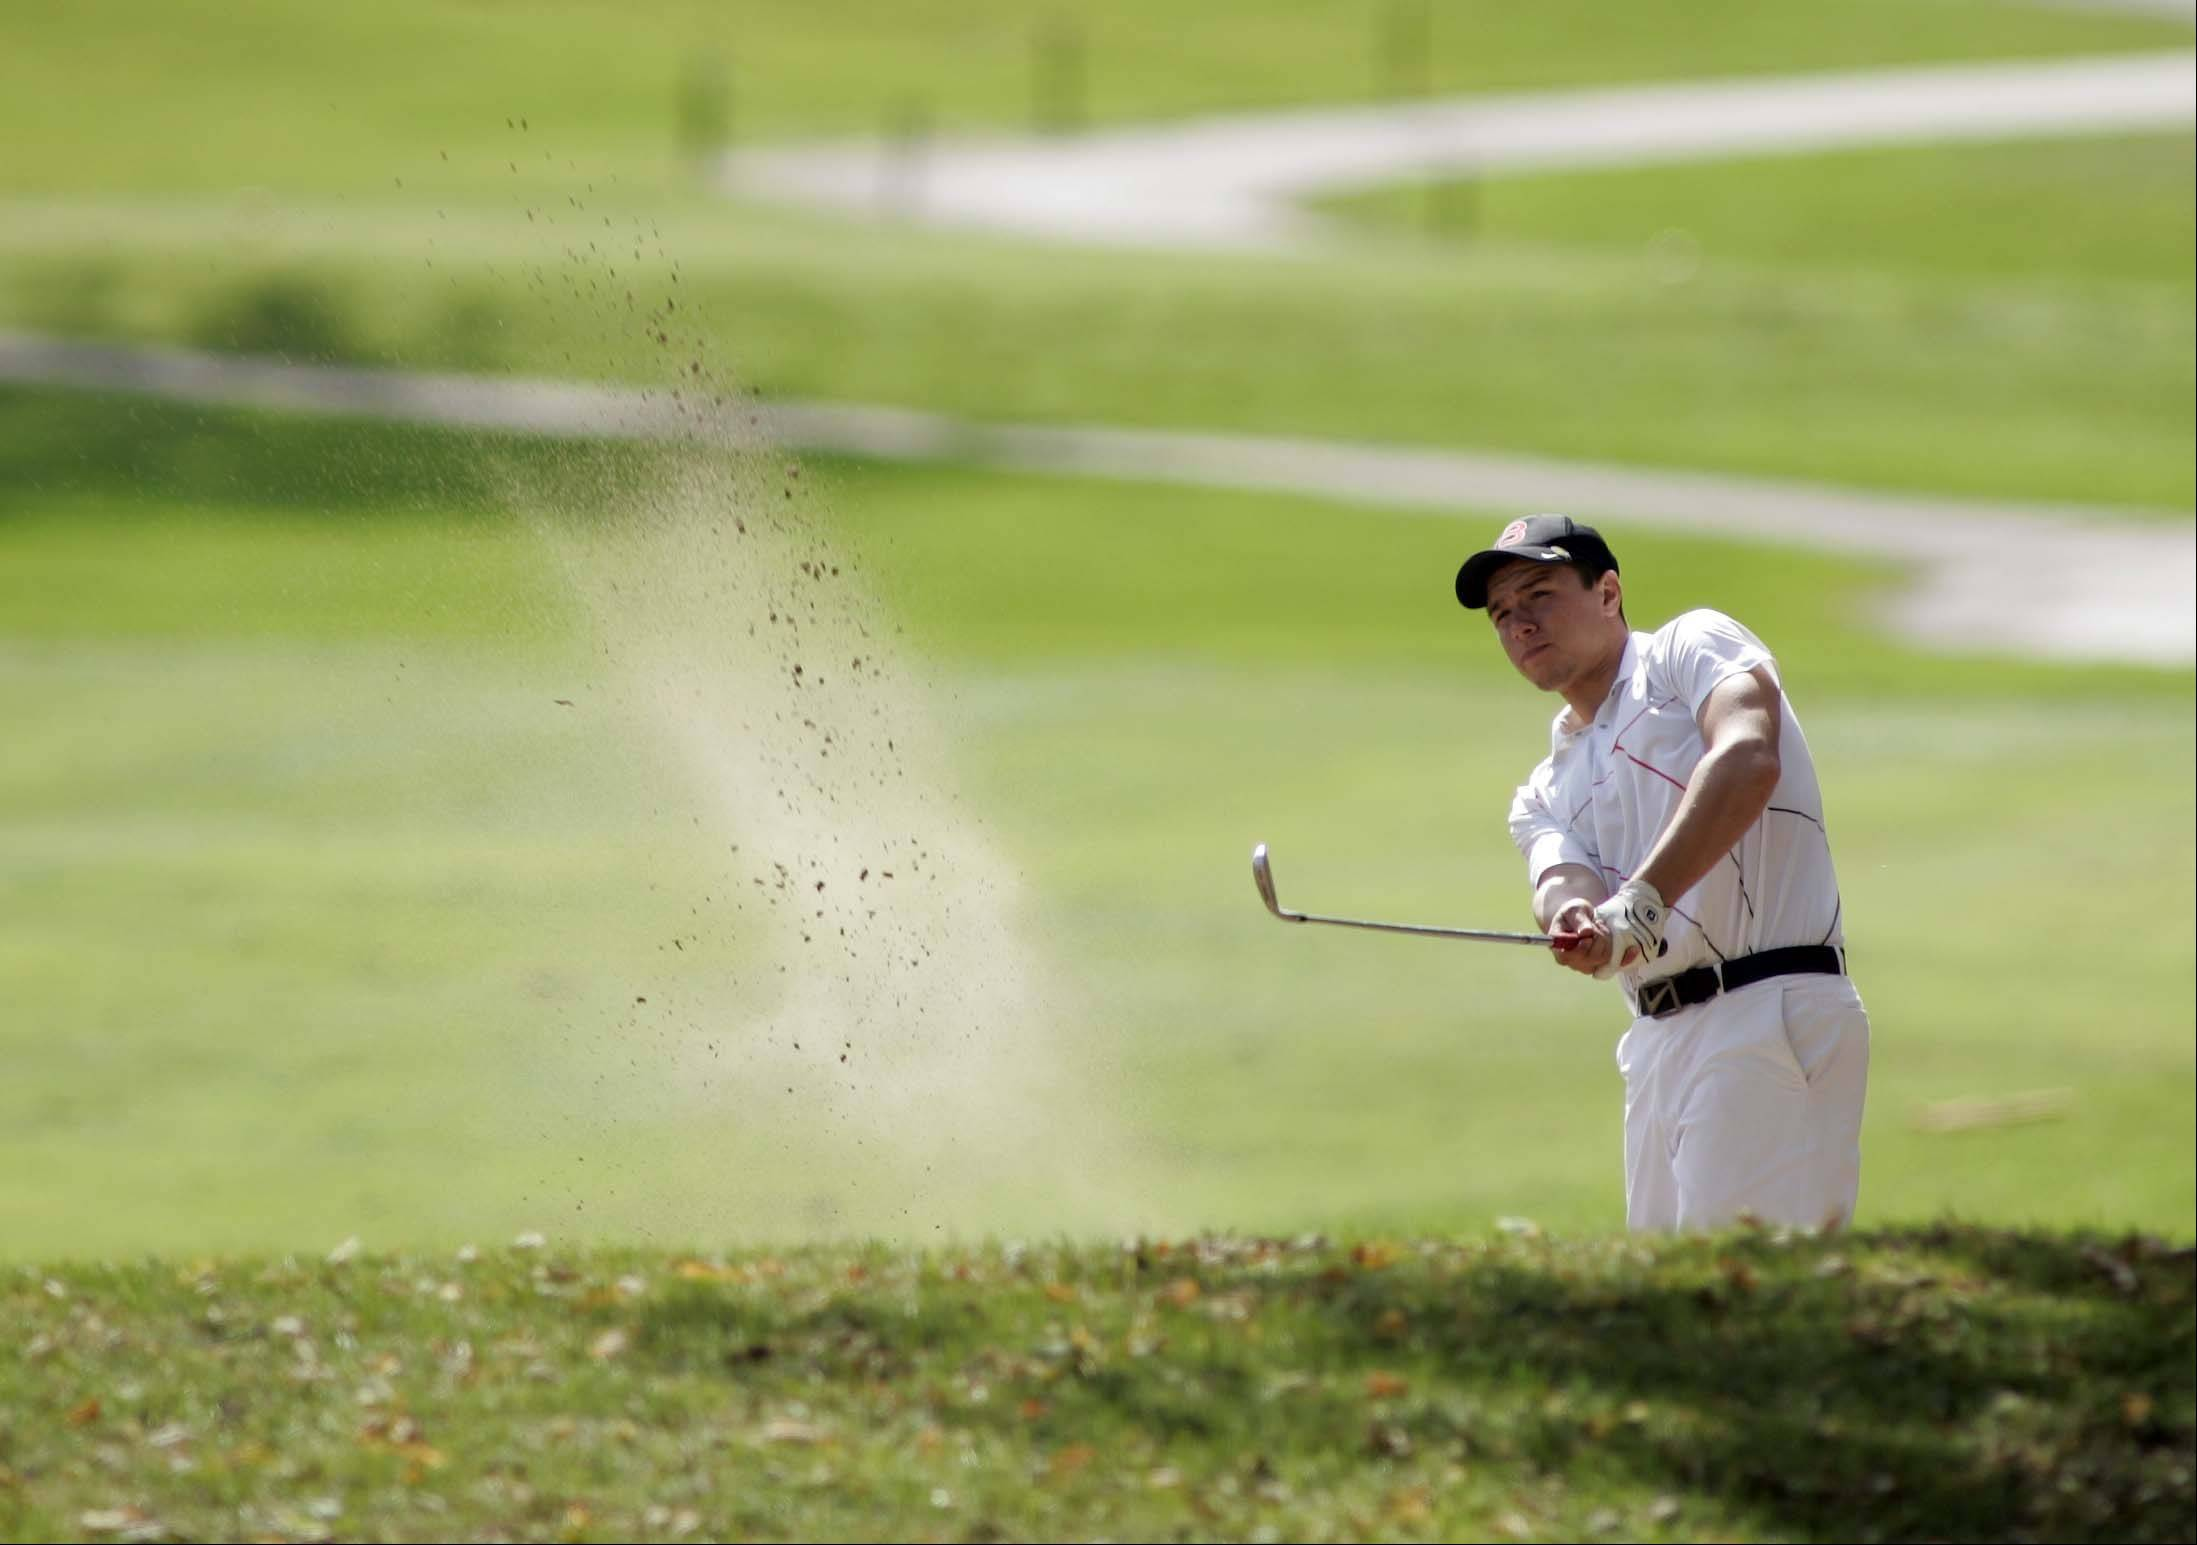 Batavia's Nathan Podraza hits out of the sand on the second hole during the Upstate Eight boys golf tournament Wednesday at St. Andrews Golf & Country Club in West Chicago. The course is open to the public.